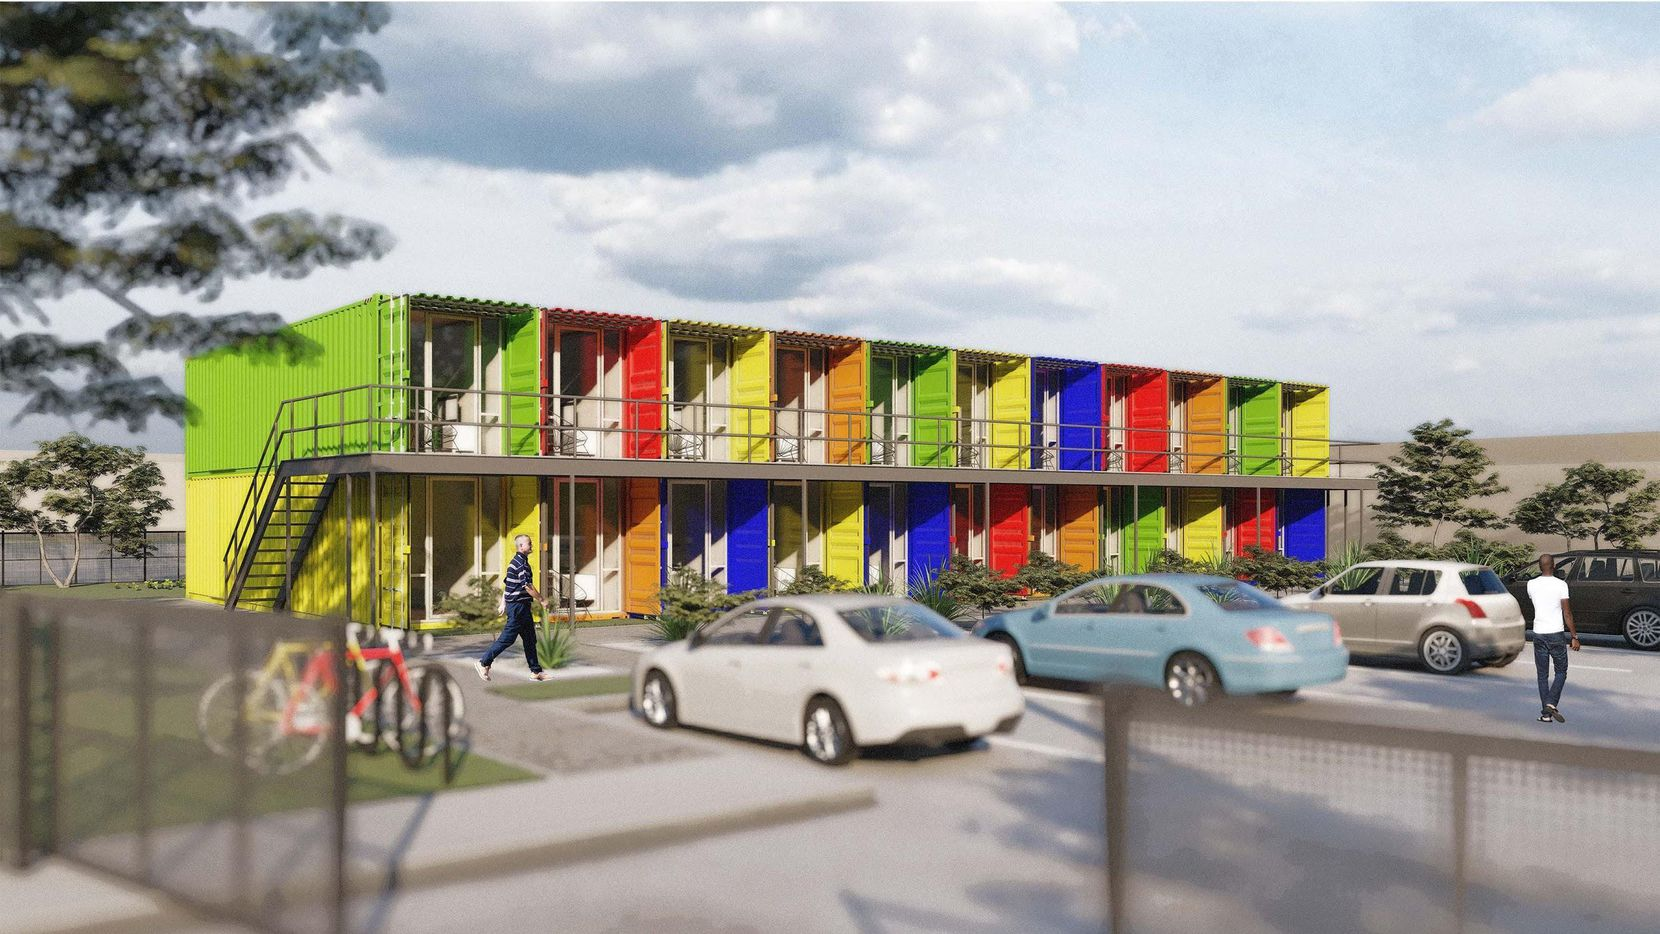 The Lomax Container Housing Project will be built on South Malcolm X Boulevard.